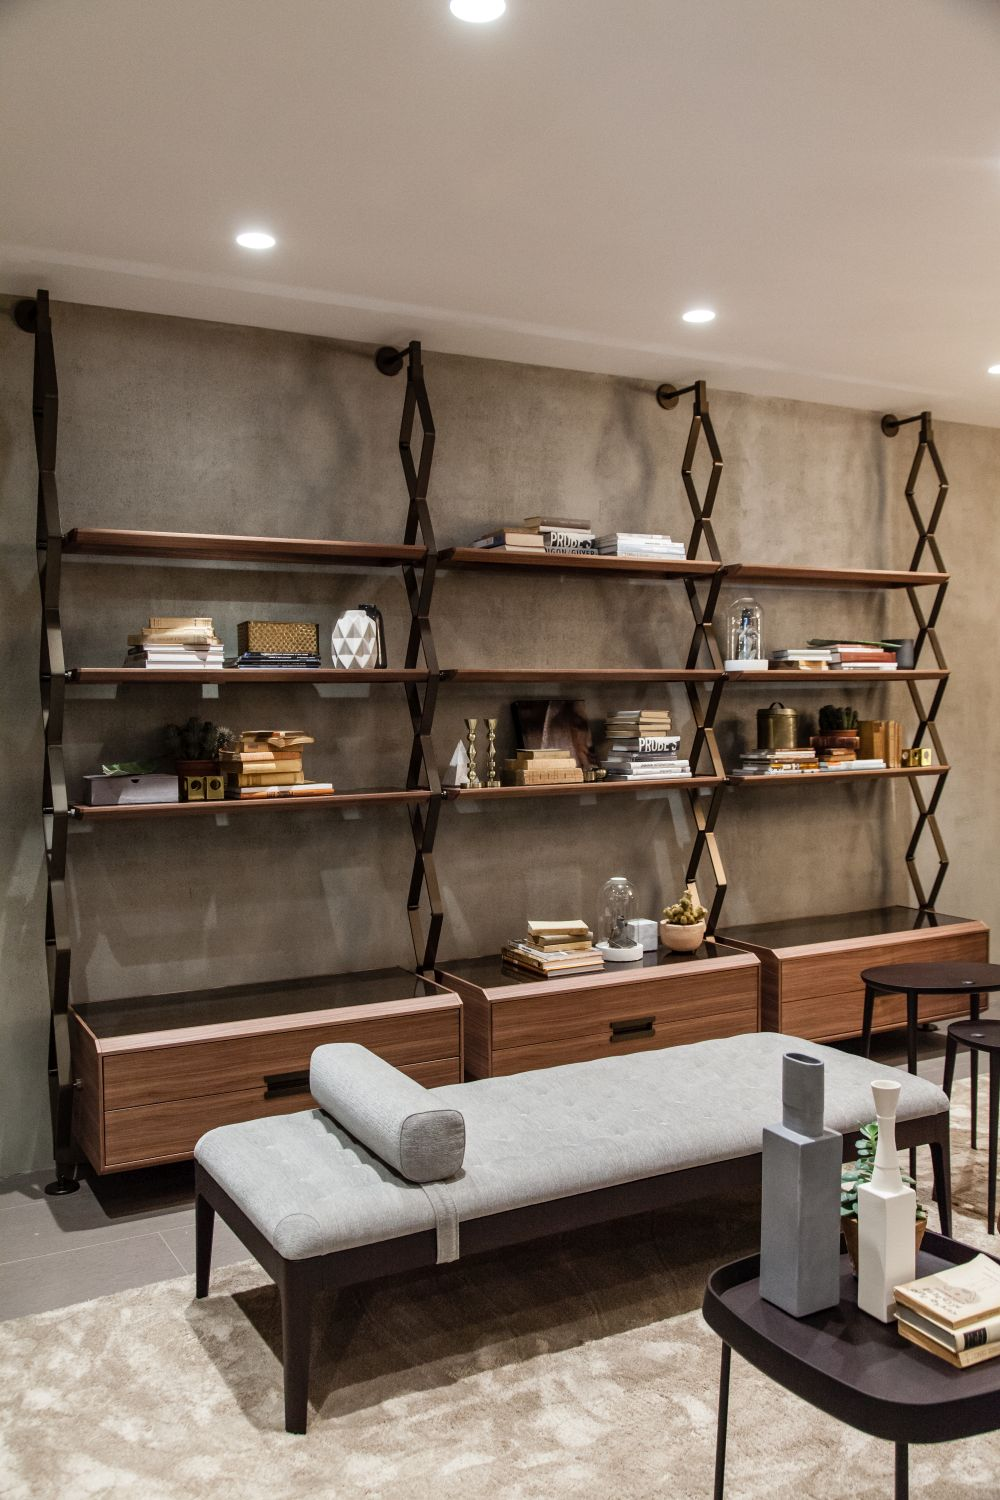 Wall-mounted bookcases come in all shapes, sizes and styles so there really is one for each type of space